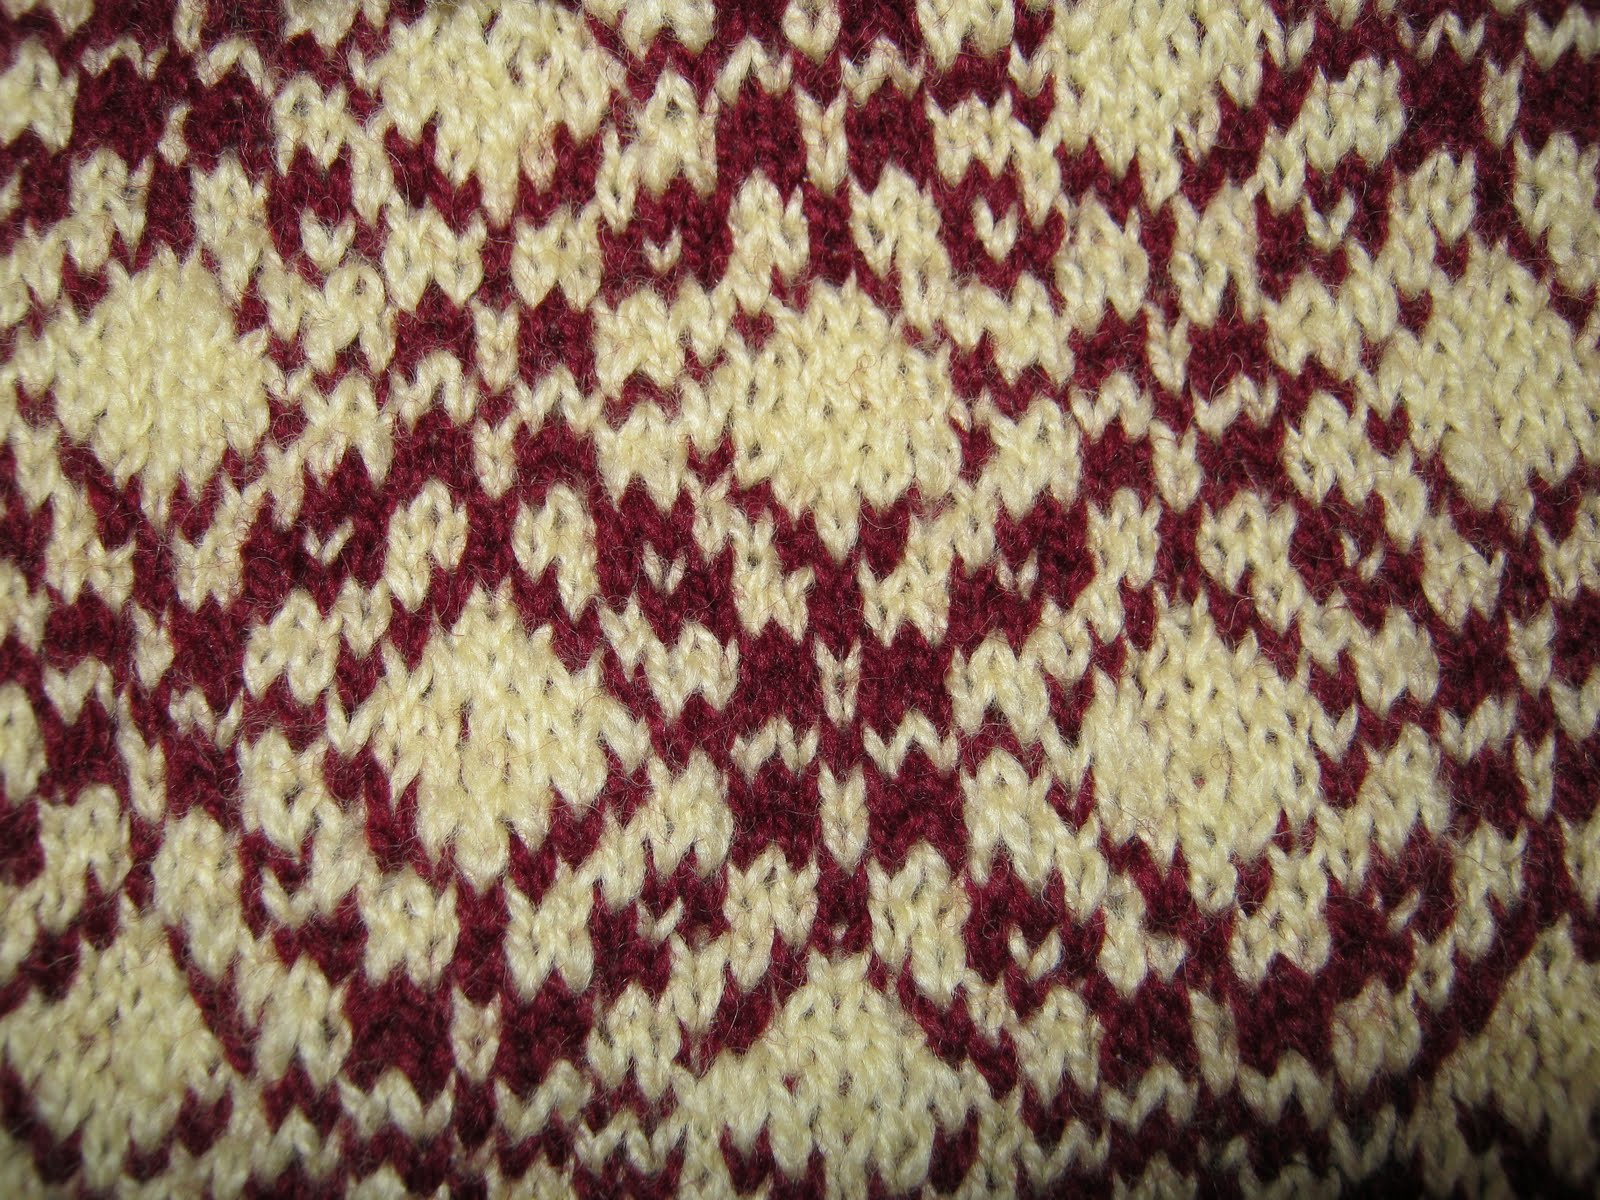 Knitting With Two Colors Meg Swansen : Counting sheep warm woolie weather